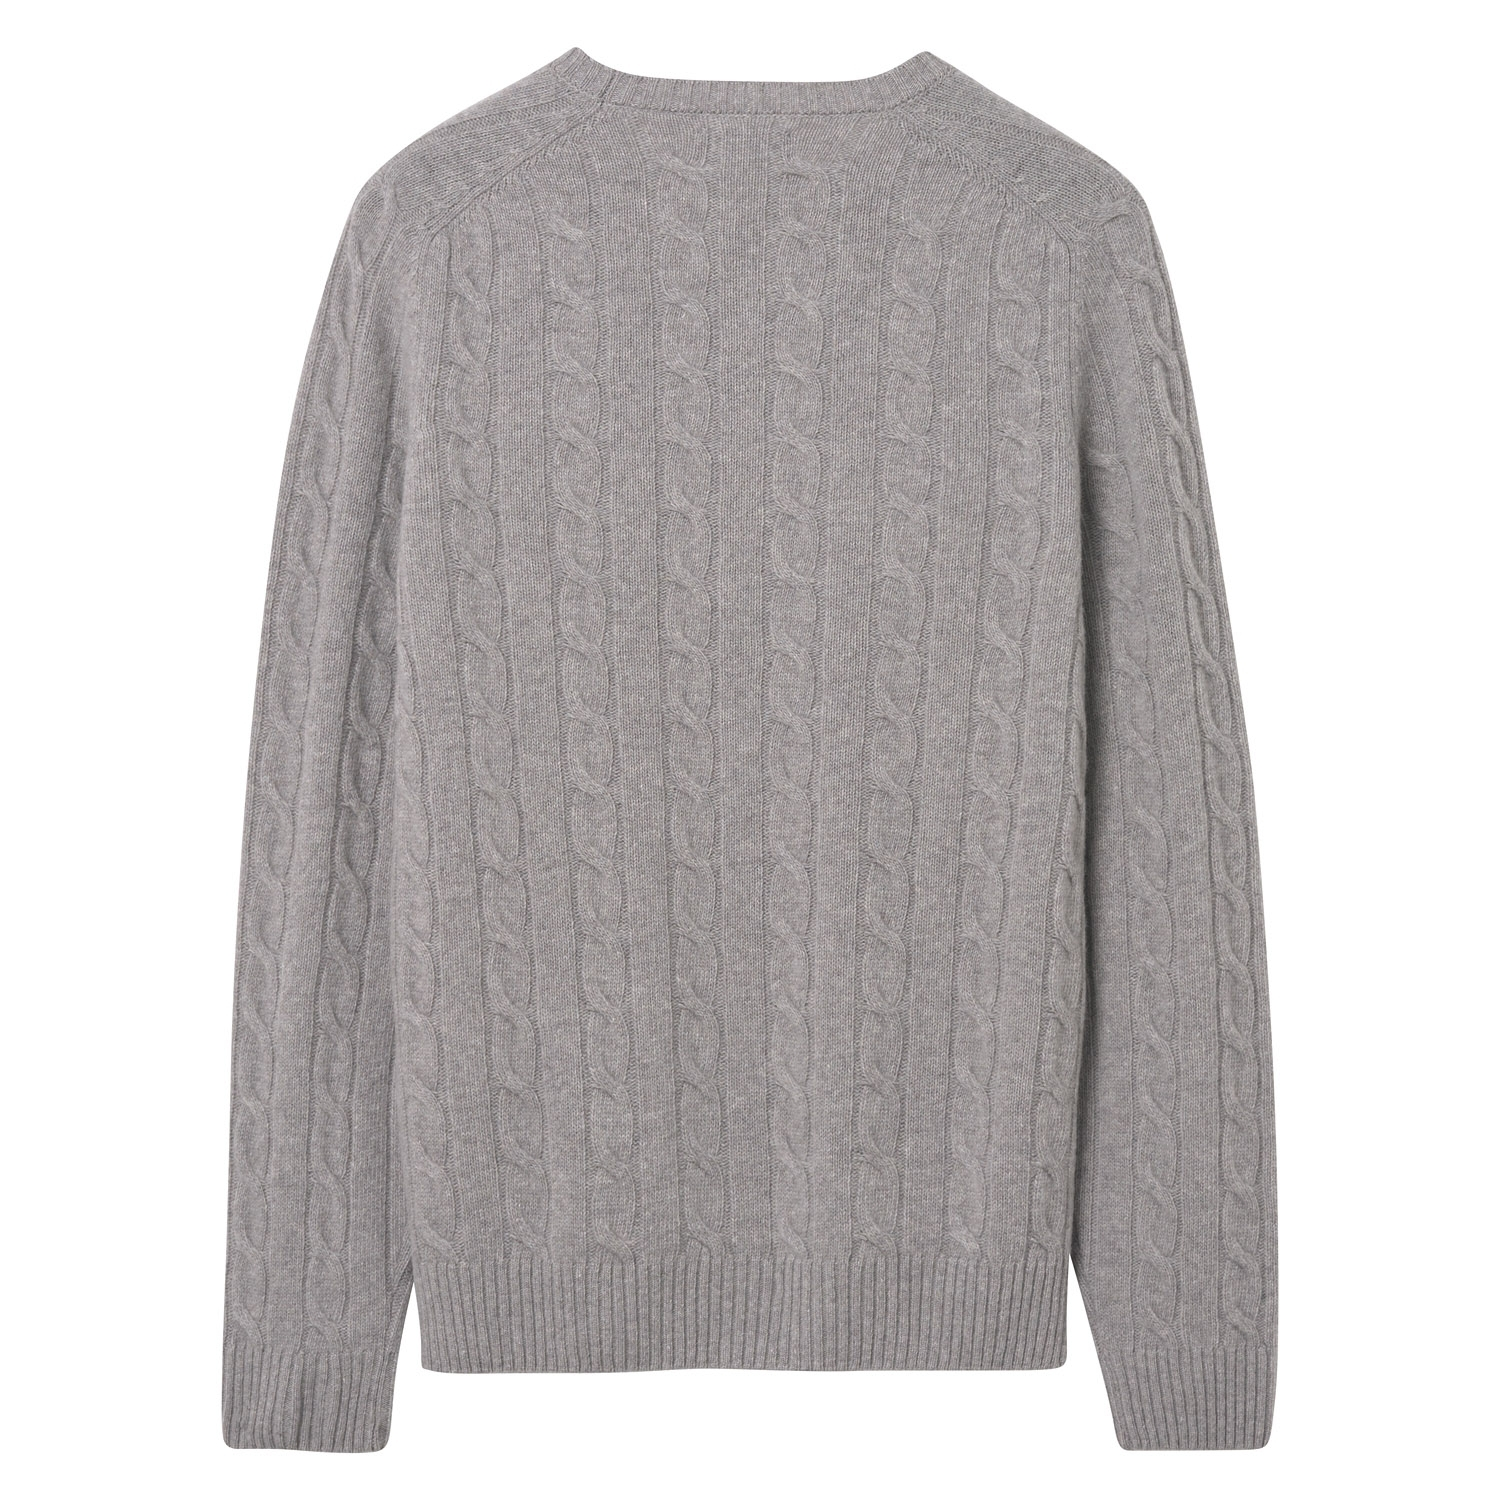 Gant Pullover Strickpullover O3. LAMBSWOOL CABLE CREW 8020028 GREY MELANGE SH18-GS1